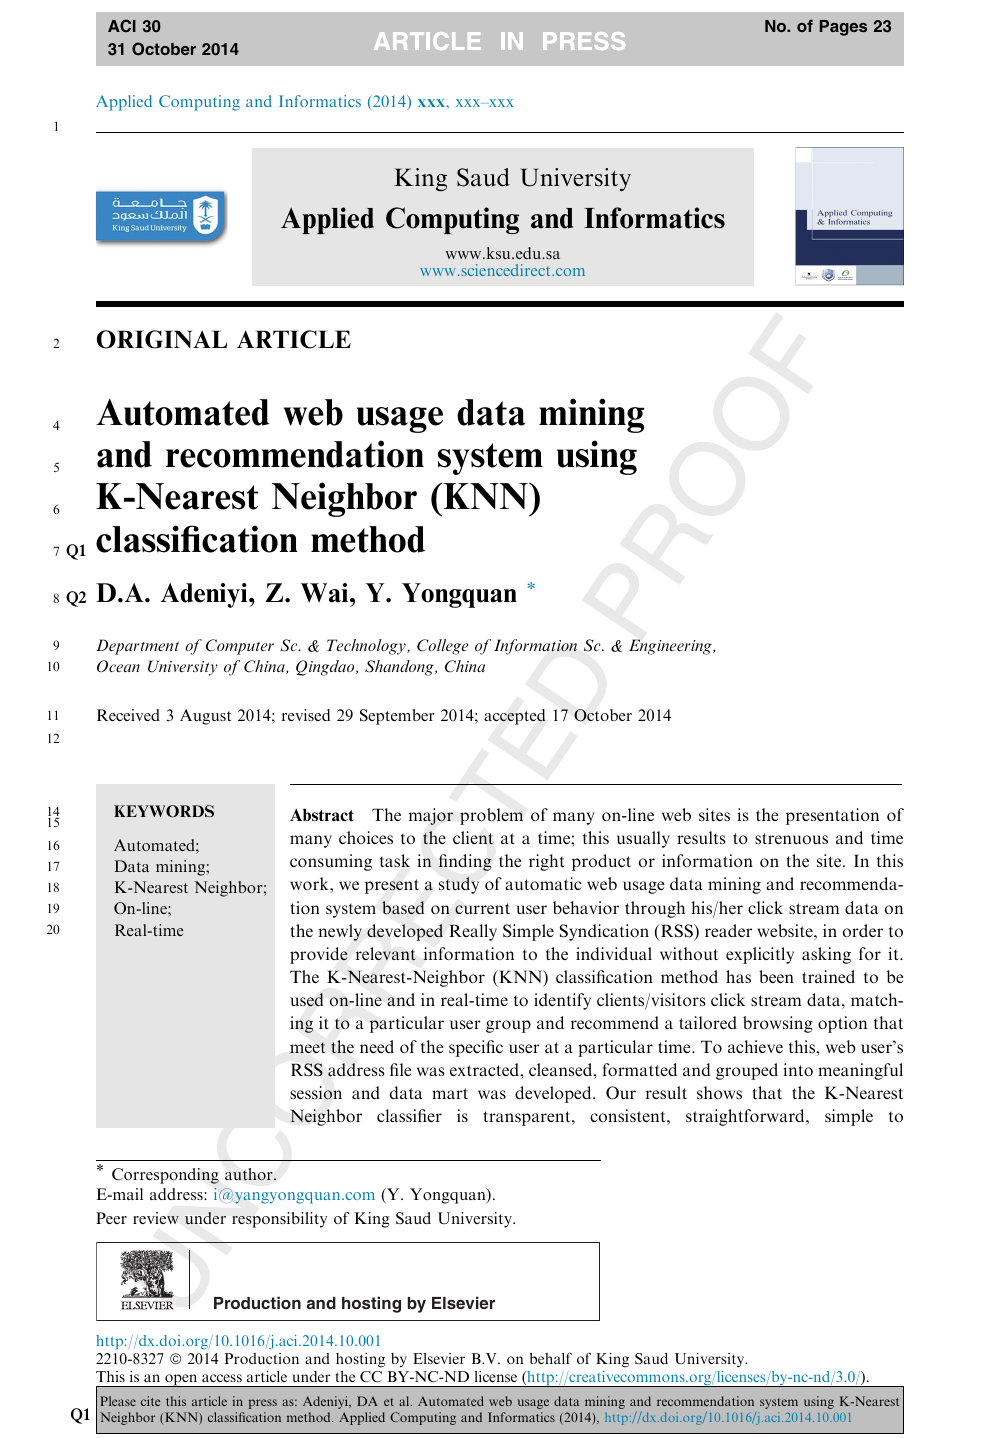 Automated web usage data mining and recommendation system